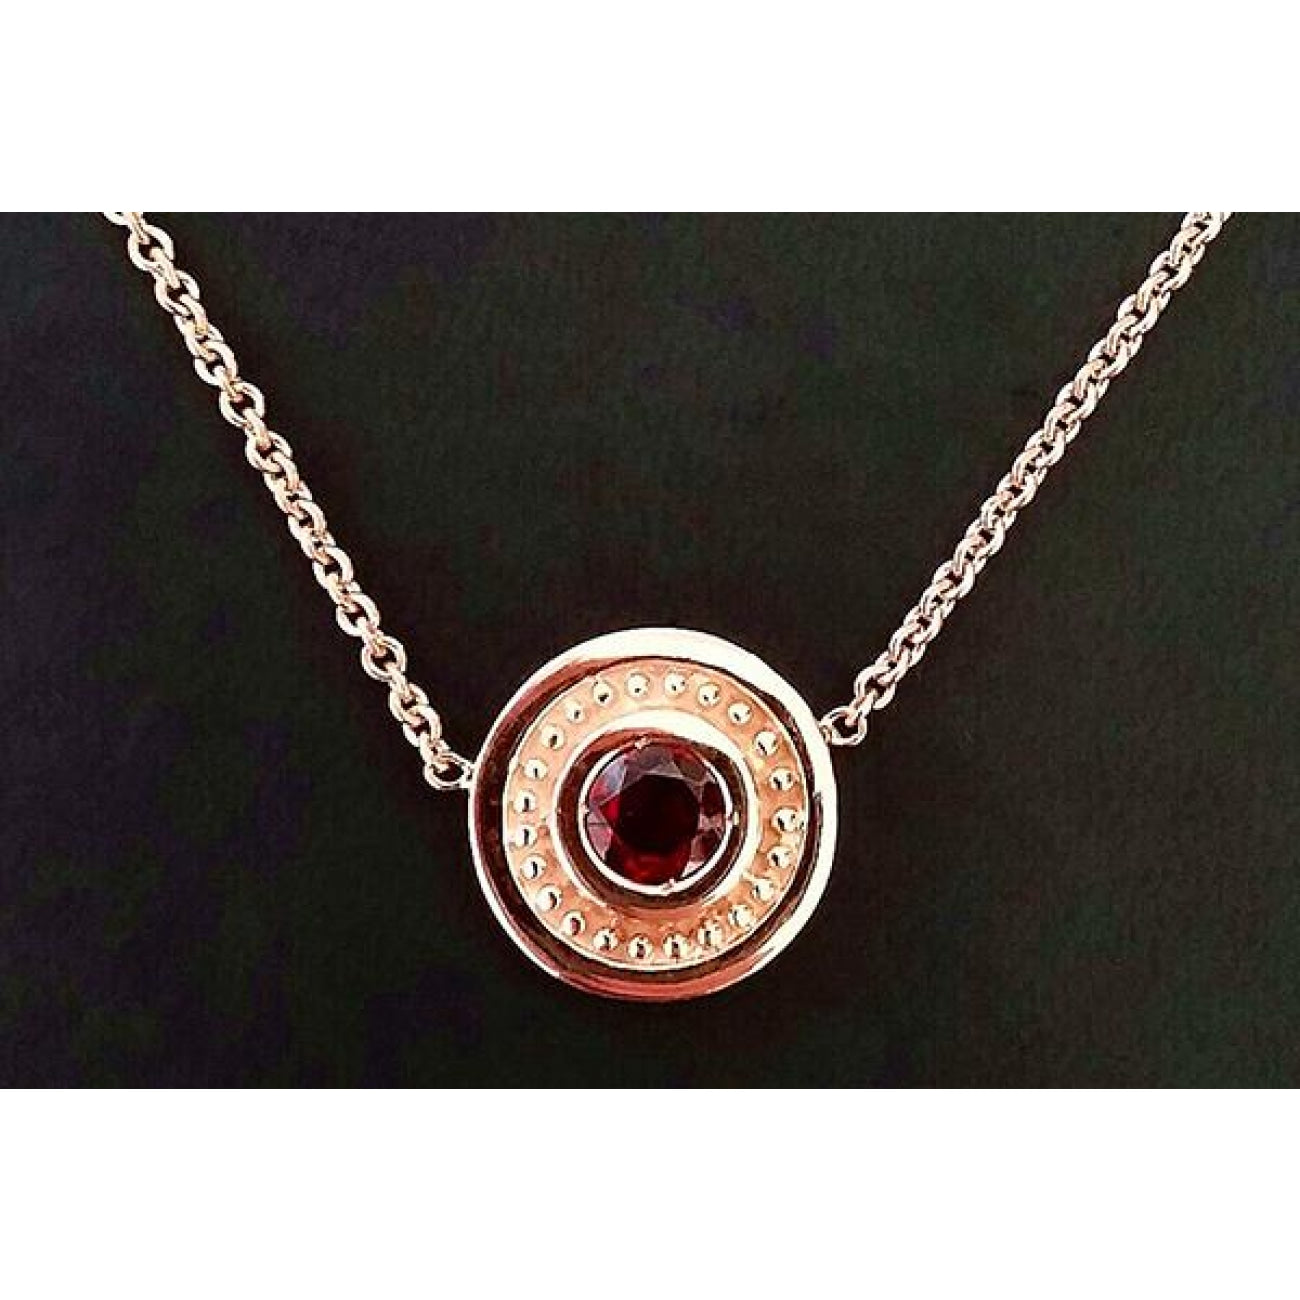 Manfredi Jewels Jewelry - Baz necklace with garnet plated in Rose Gold | Manfredi Jewels